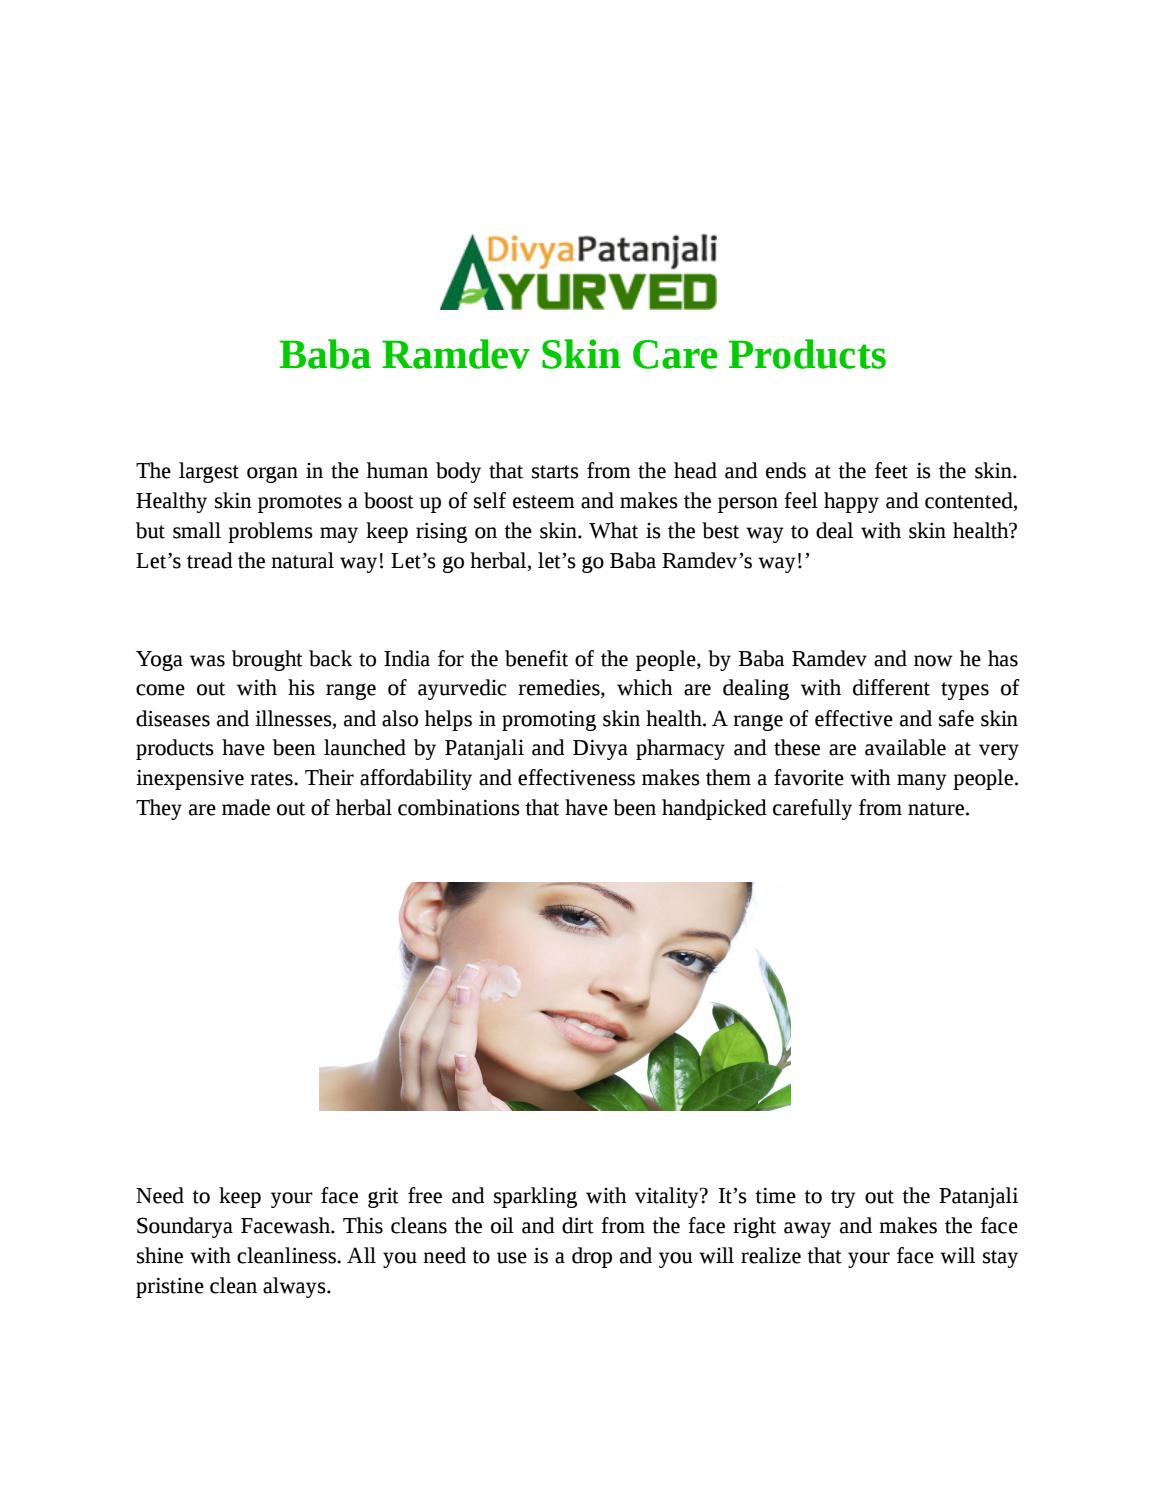 Baba ramdev skin care products by divyapatanjaliayurved - issuu